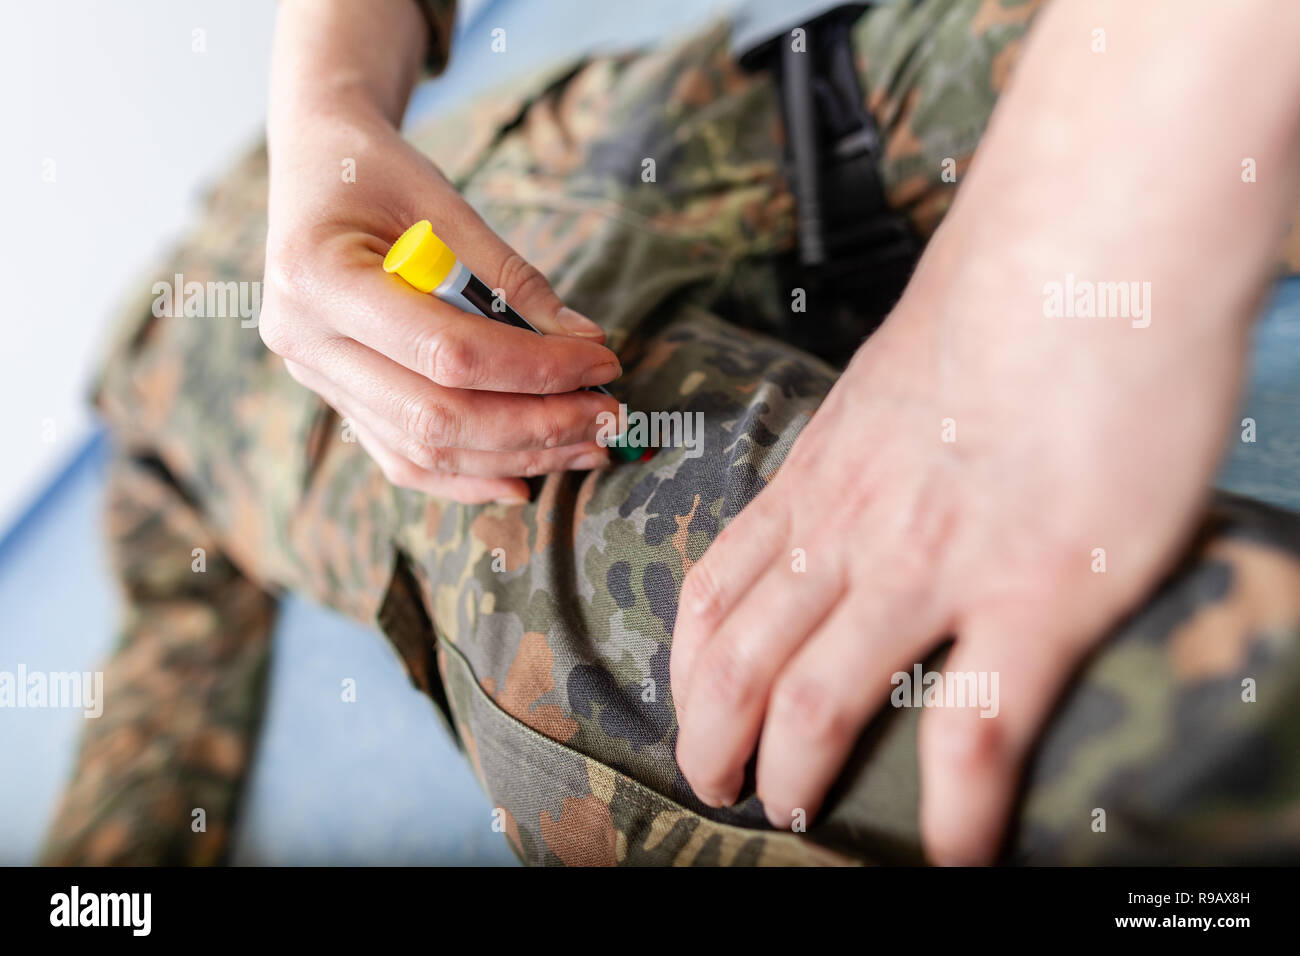 German soldier injections a morphin auto injector - Stock Image